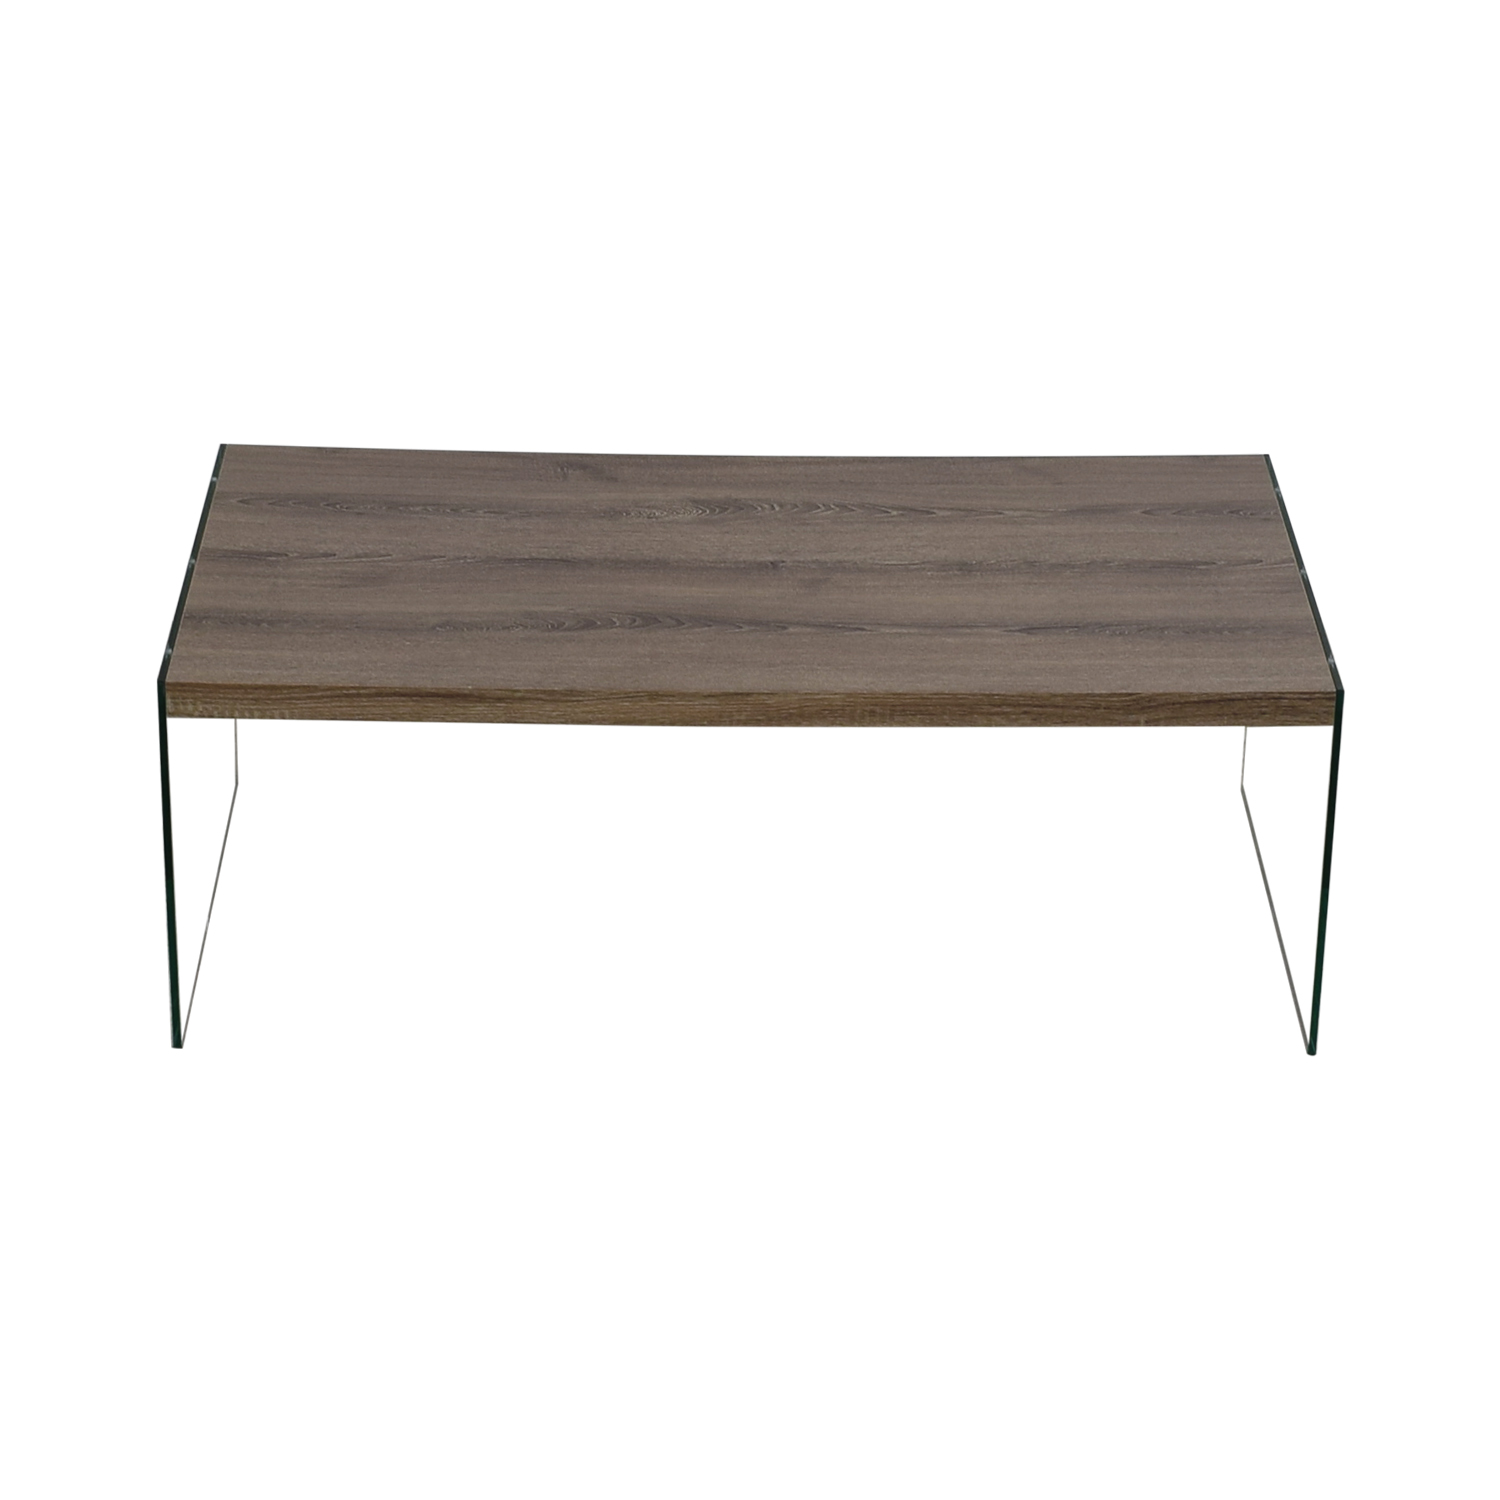 ... Monarch Specialties Monarch Specialties Grey Rustic Wood And Glass  Coffee Table Second Hand ...